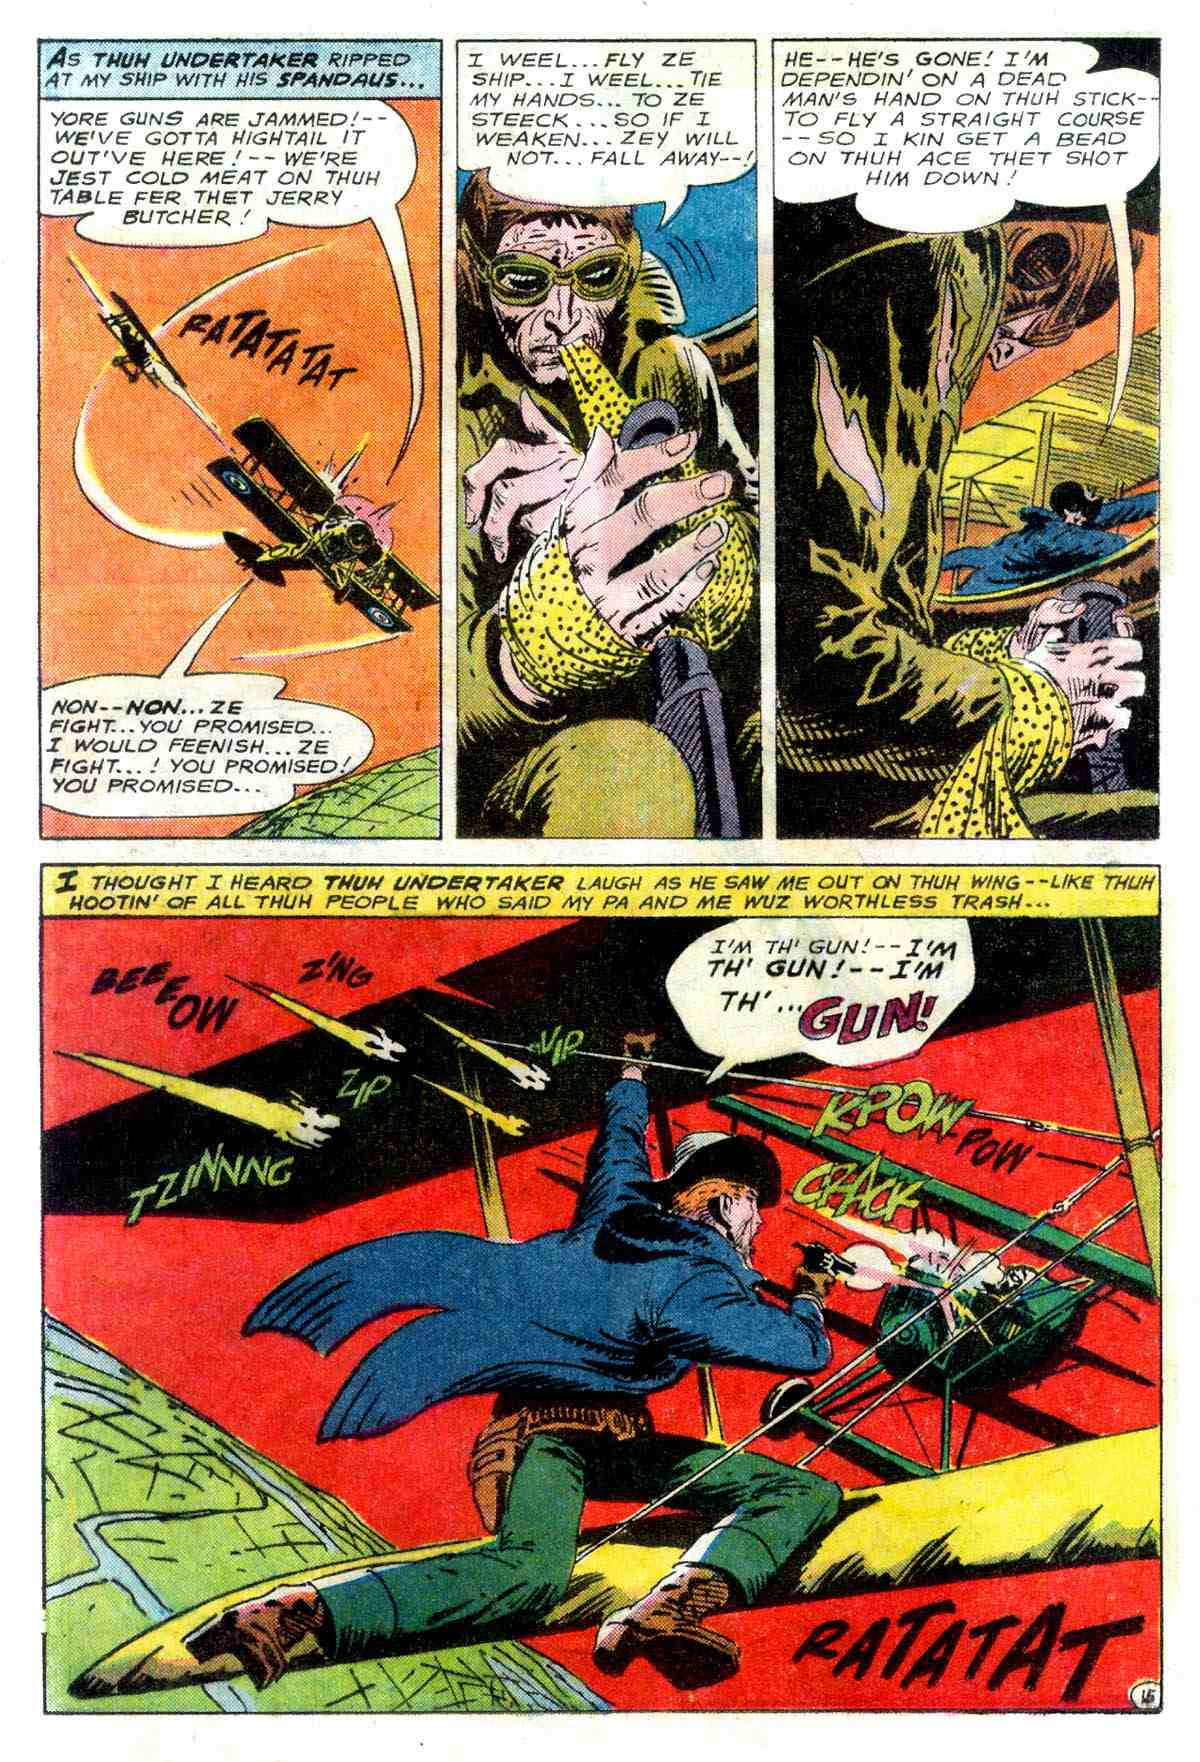 All-American Men of War #114 (Apr 1966) by Robert Kanigher and Joe Kubert